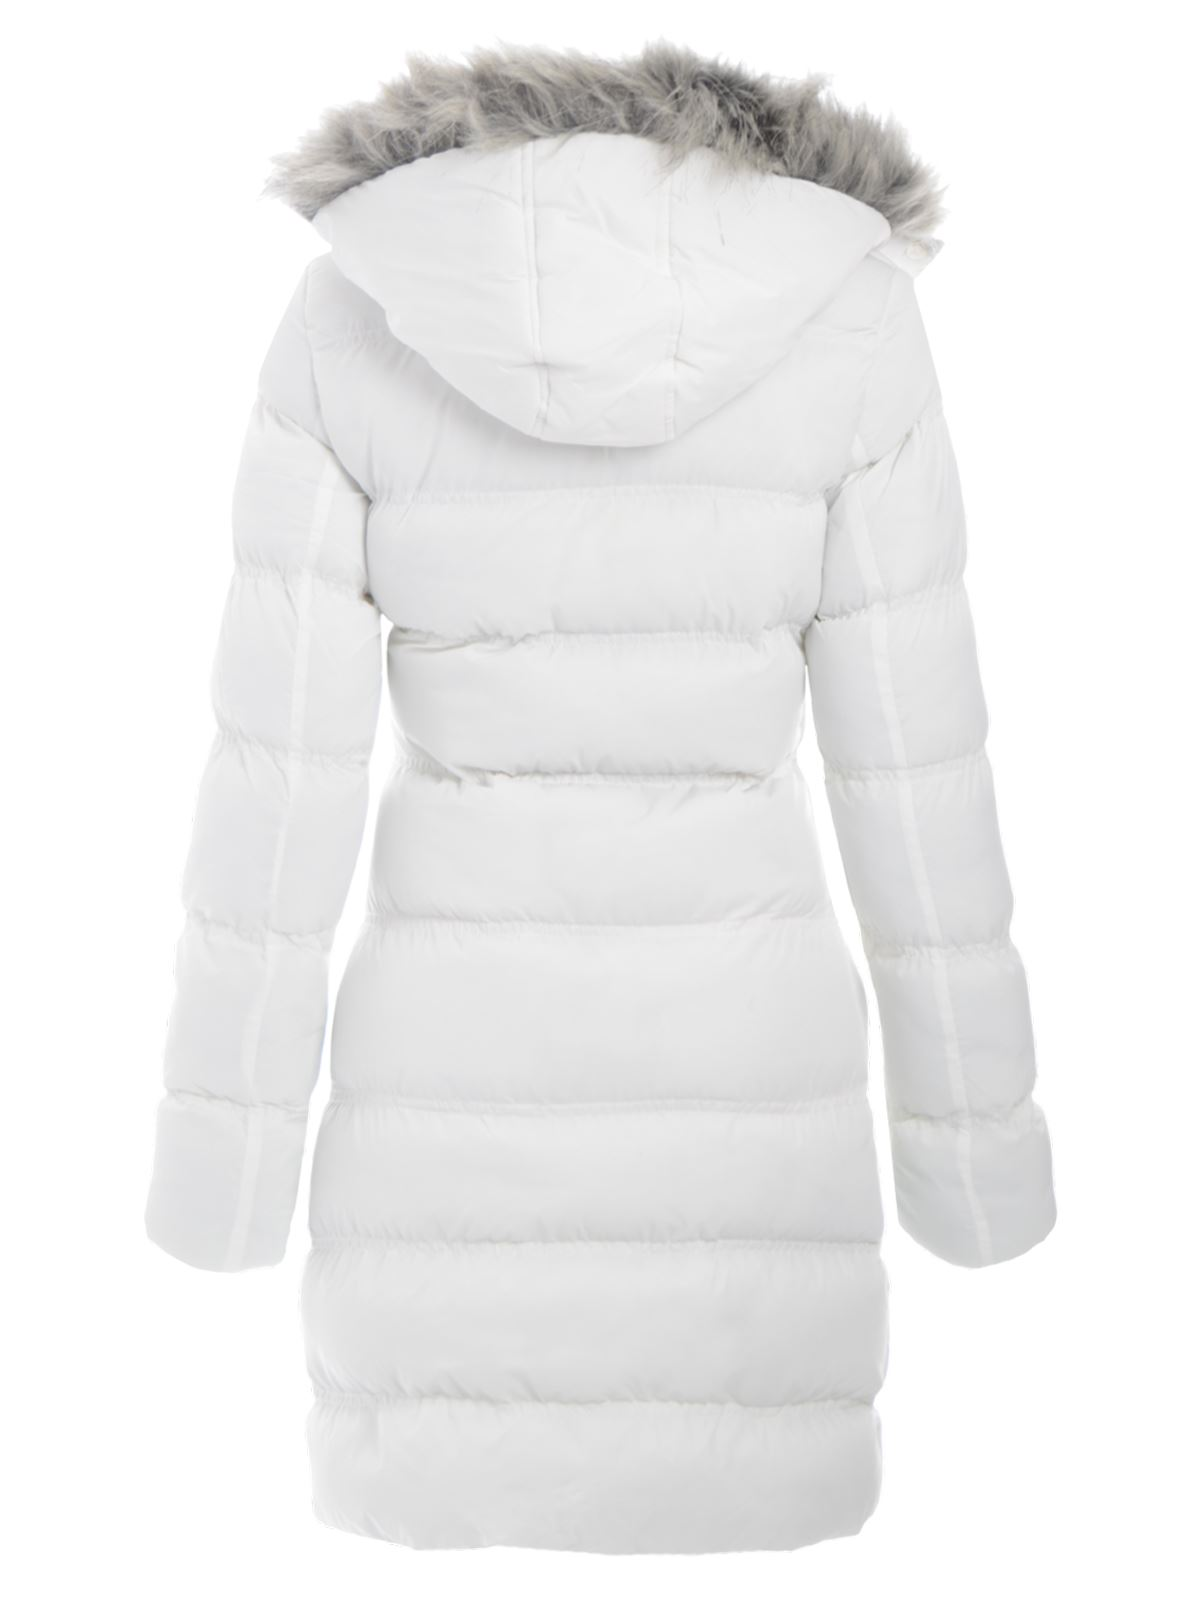 Women's parka coats with fur hood sale